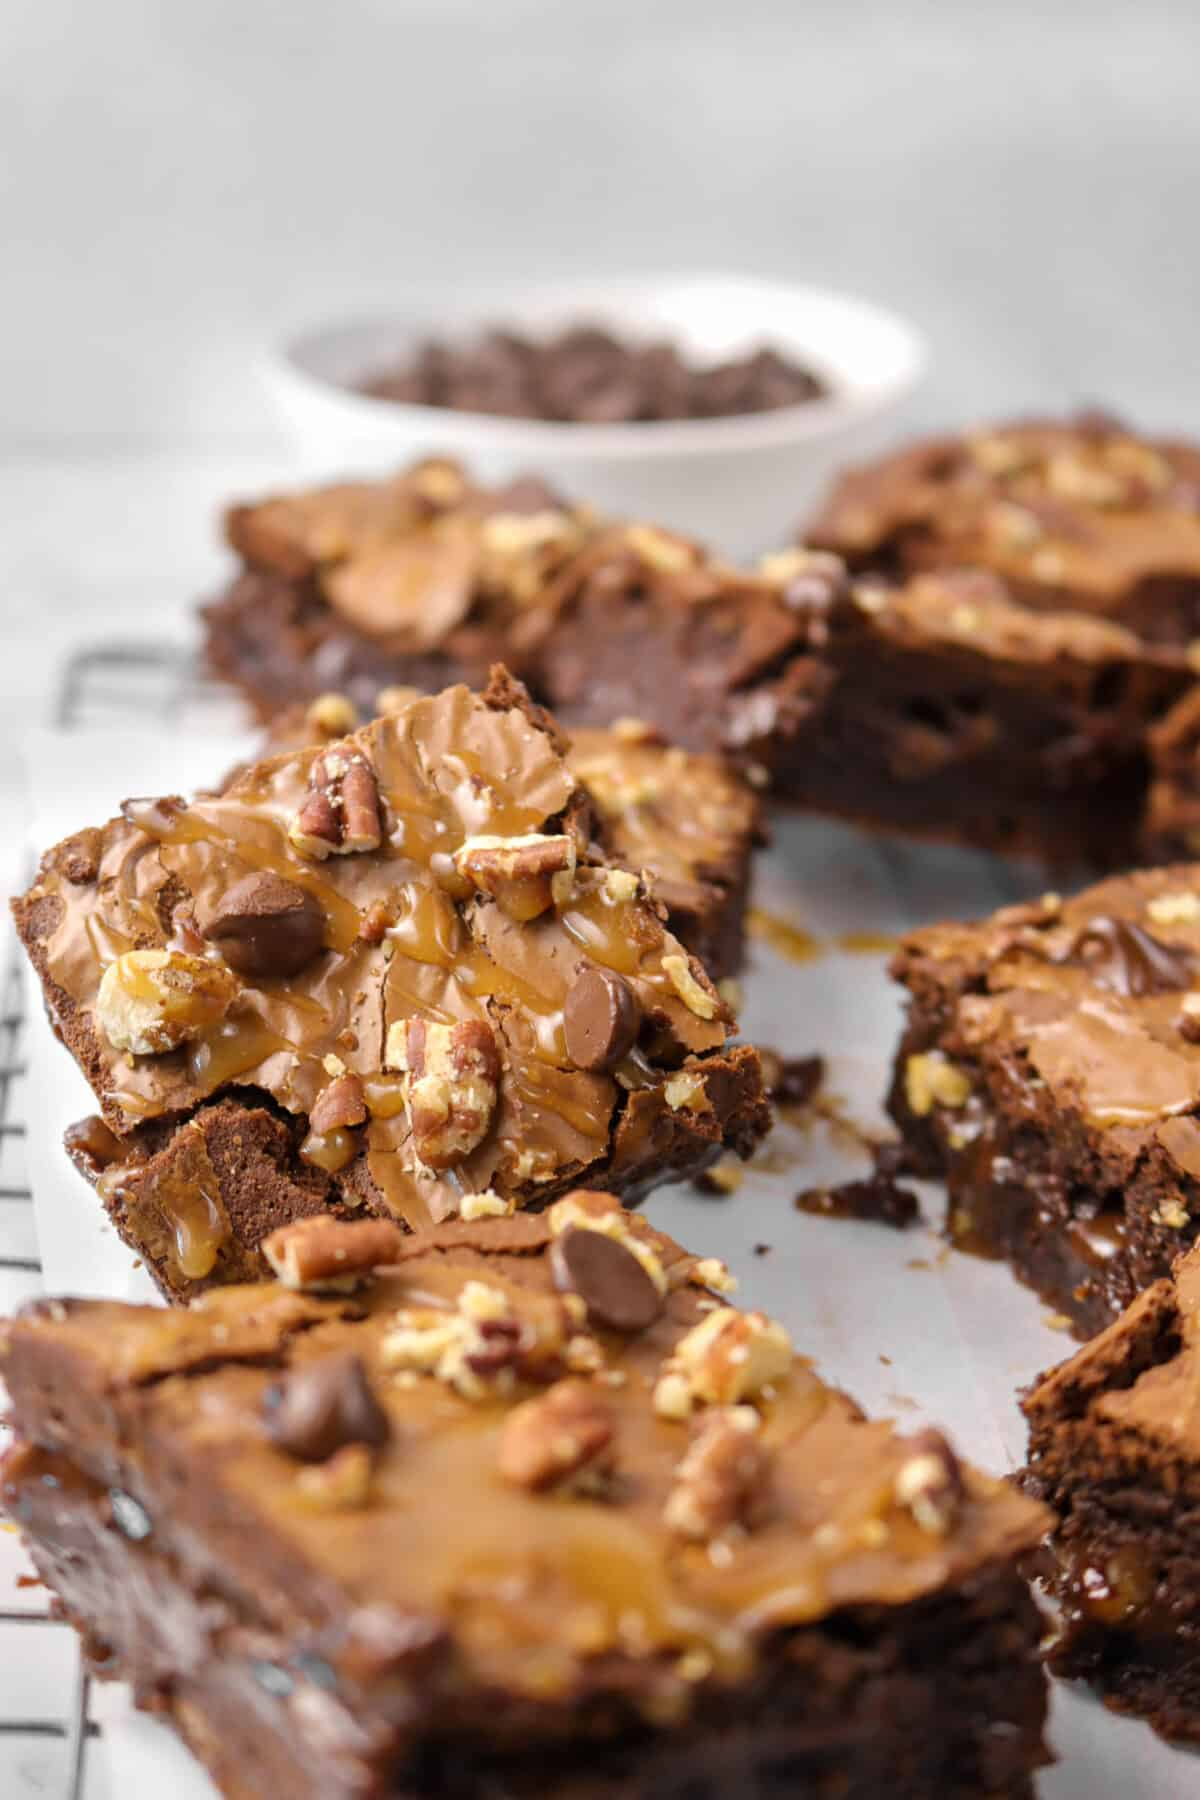 turtle brownies laying against each other on a wire cooling rack with a bowl of chocolate chips behind